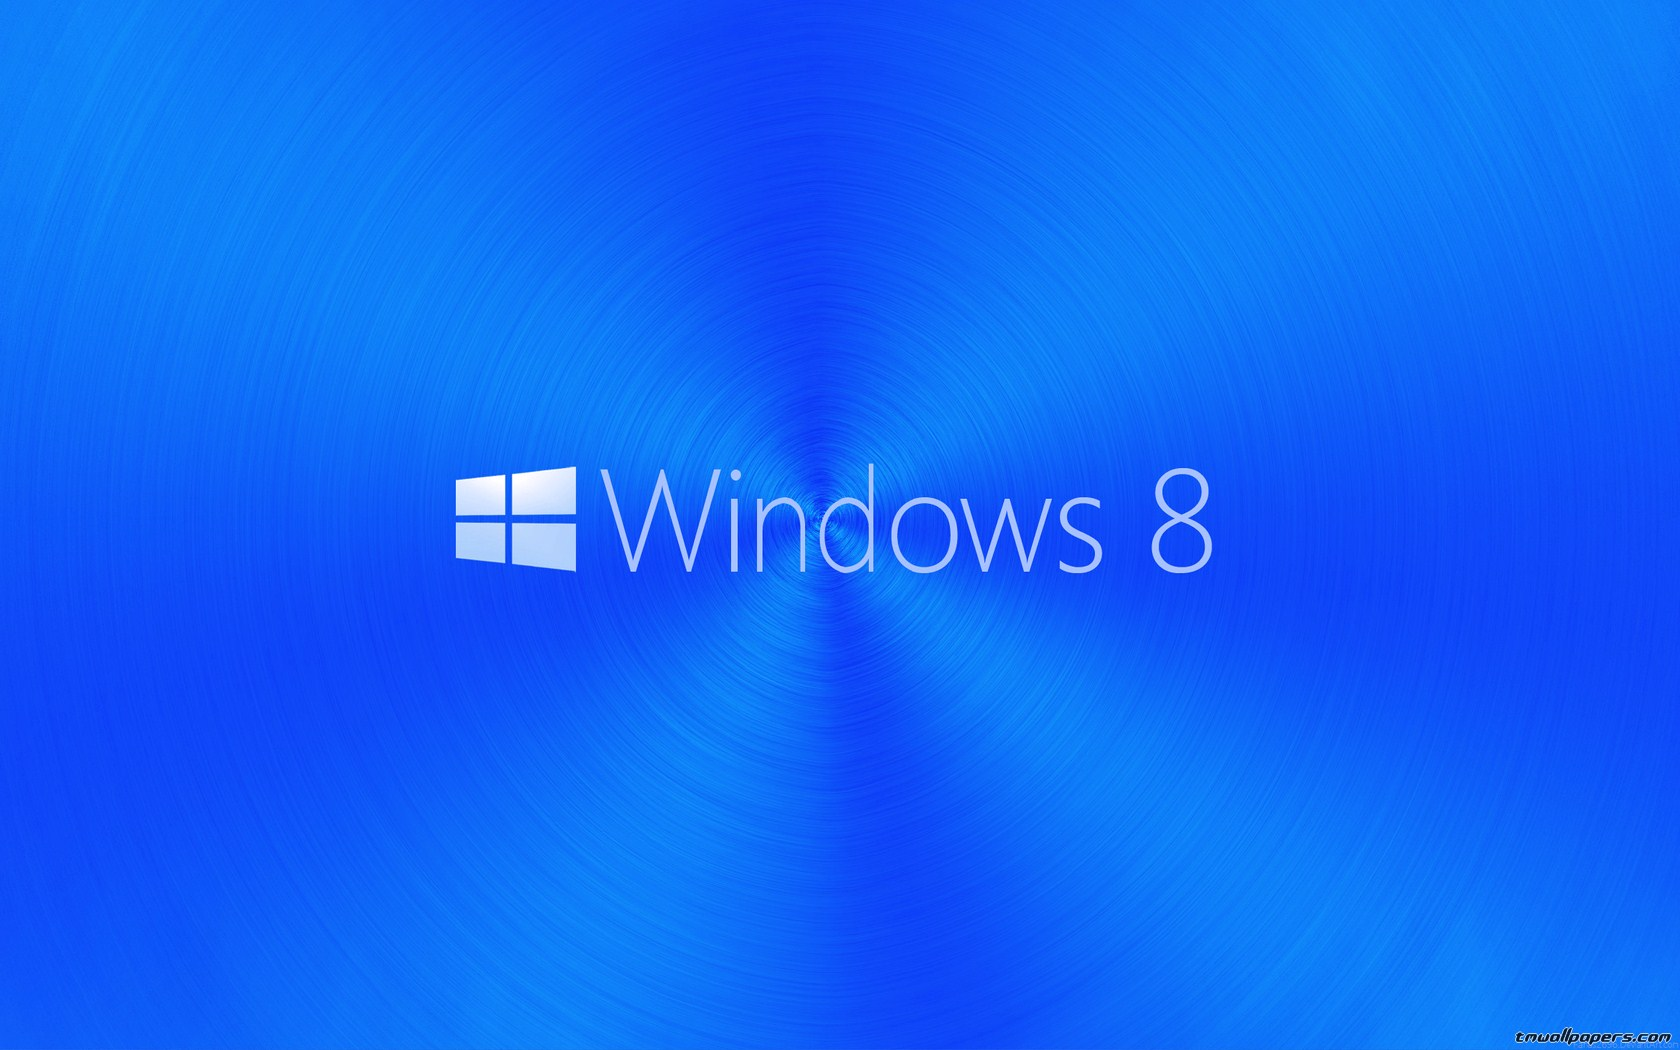 TM.Wallpapers Wide wallpapers e HD wallpapers - Windows 8 wallpapers ...